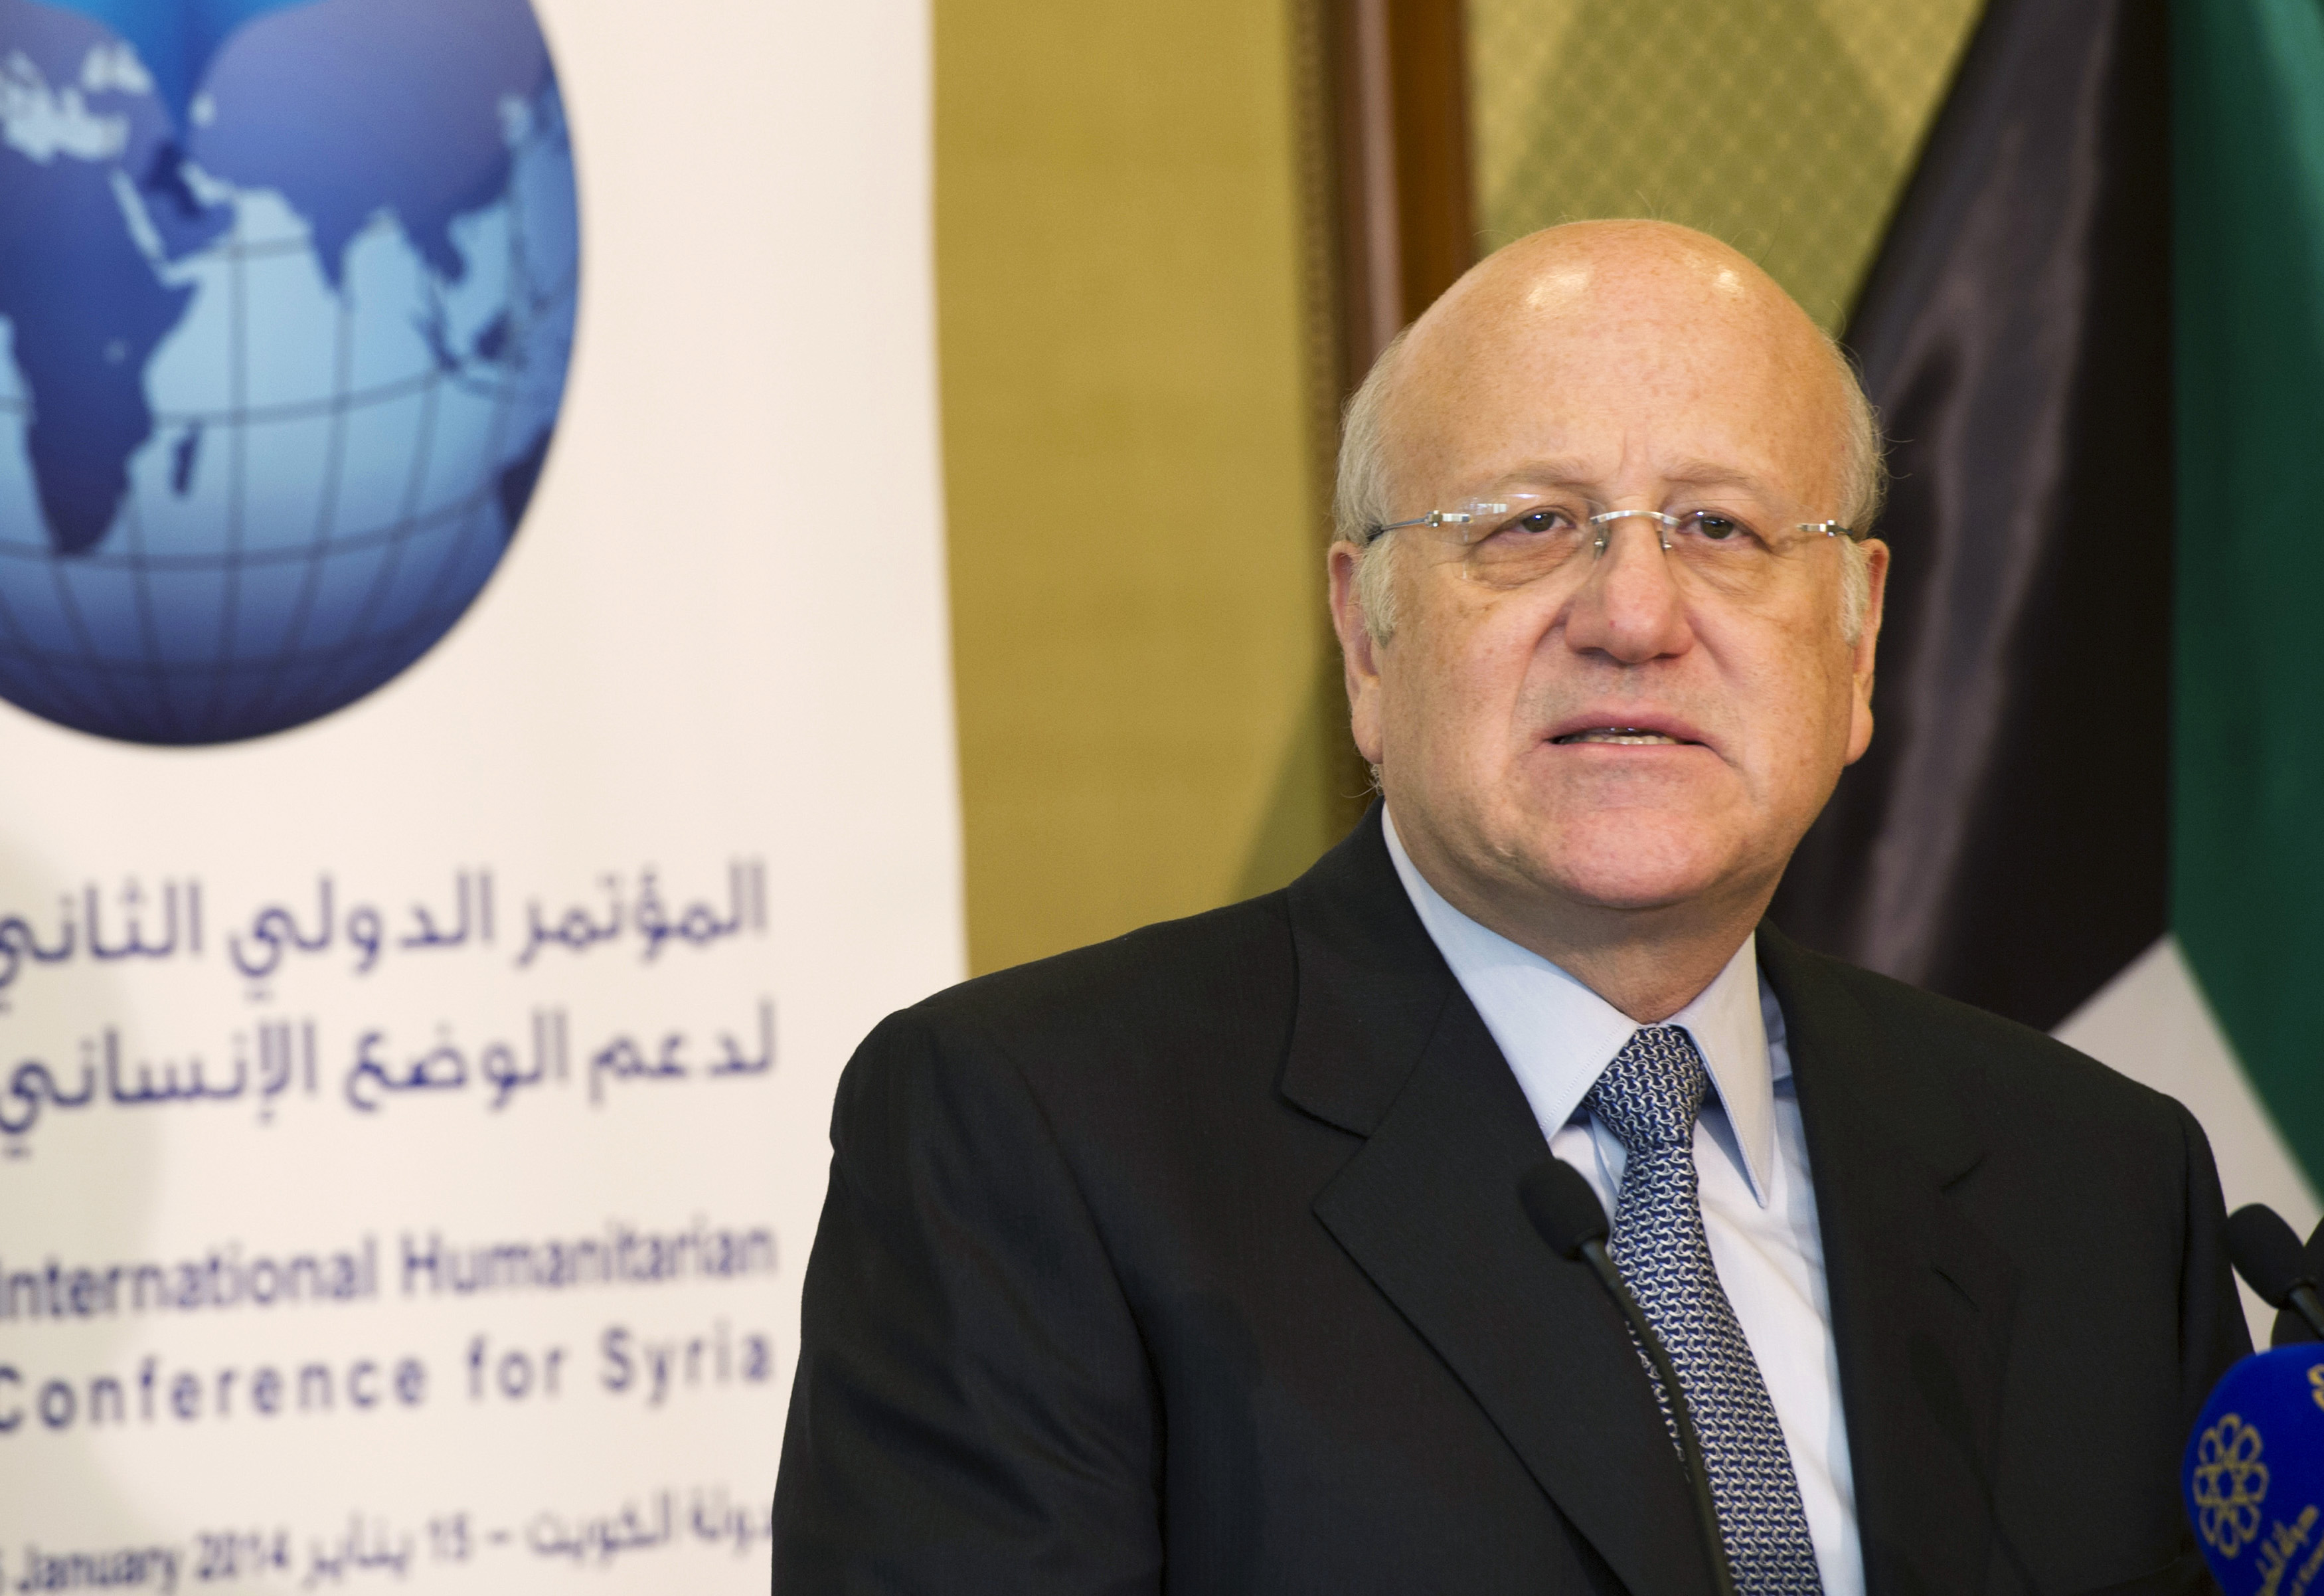 Najib Mikati attends a news conference at the opening session of the Syrian Donors Conference at Bayan Palace Liberation Hall in Kuwait City January 15, 2014. REUTERS/Stephanie McGehee/Files